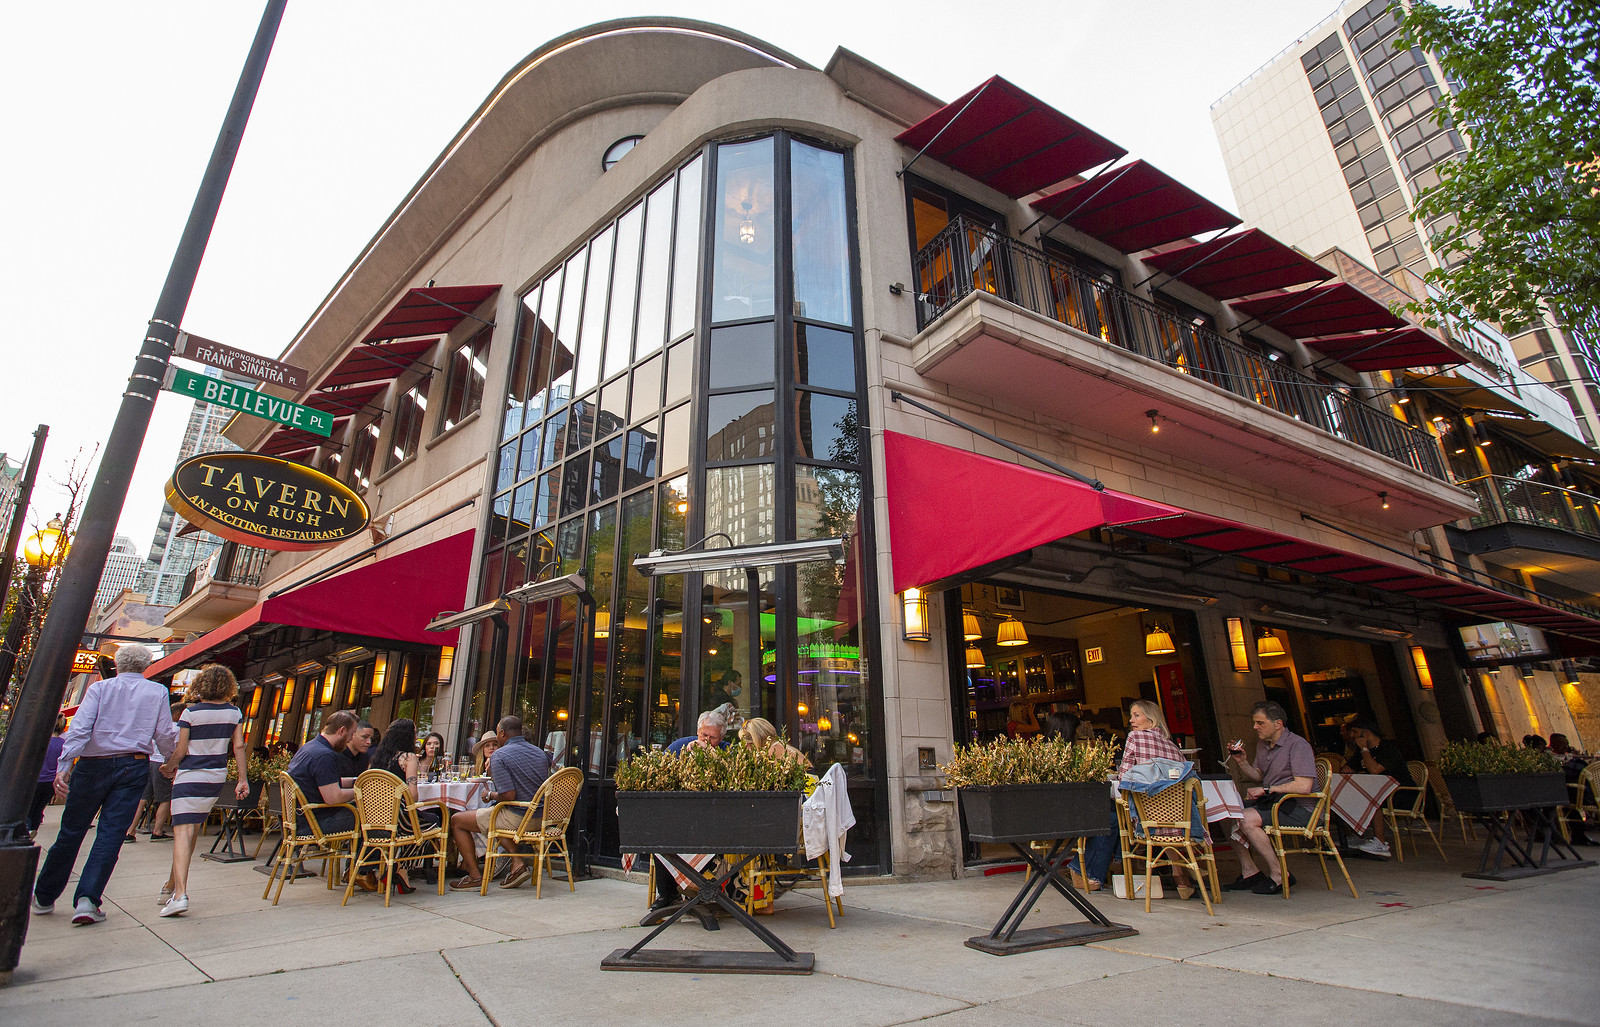 The exterior of Tavern on Rush, with several folks dining outdoors.